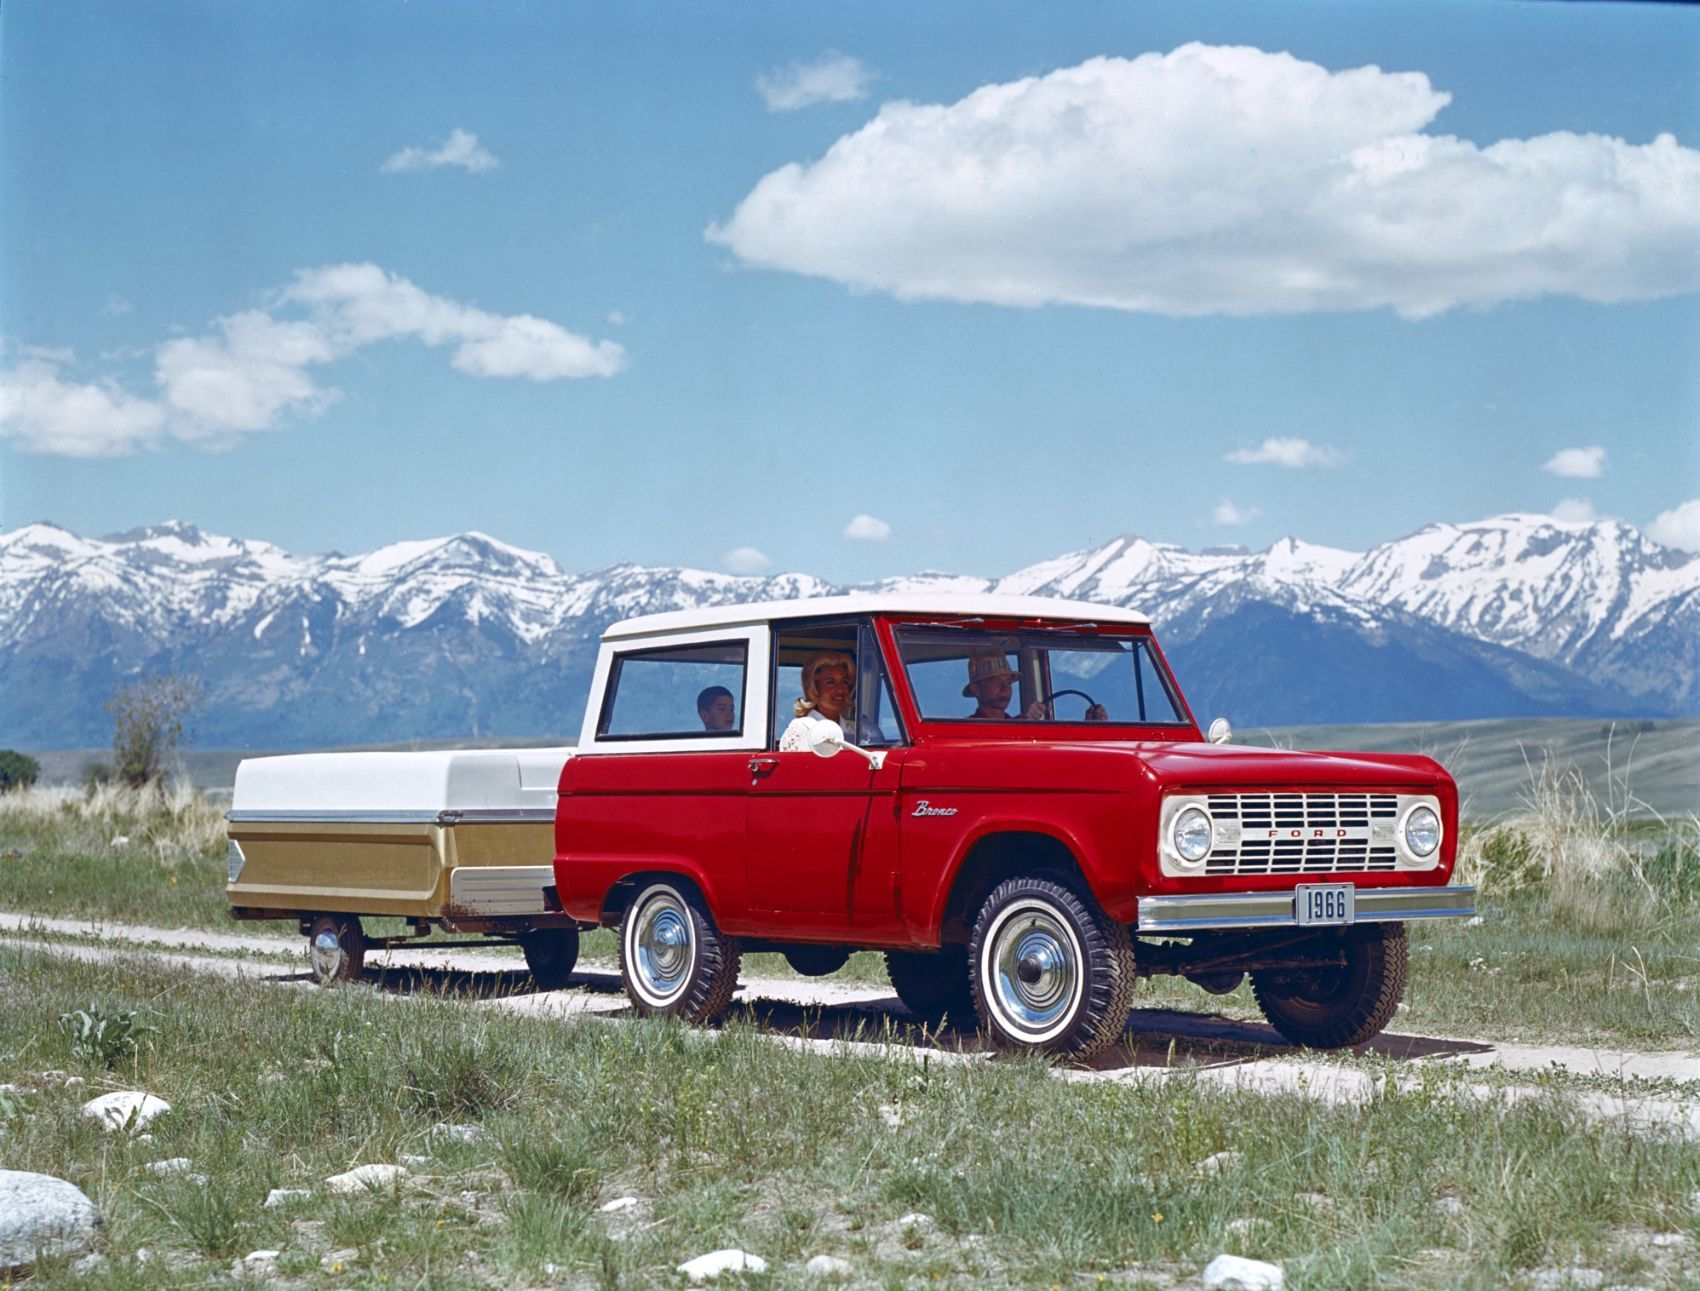 Classic Ford Bronco Versus S&P: Can This 4×4 Out Climb The Markets?